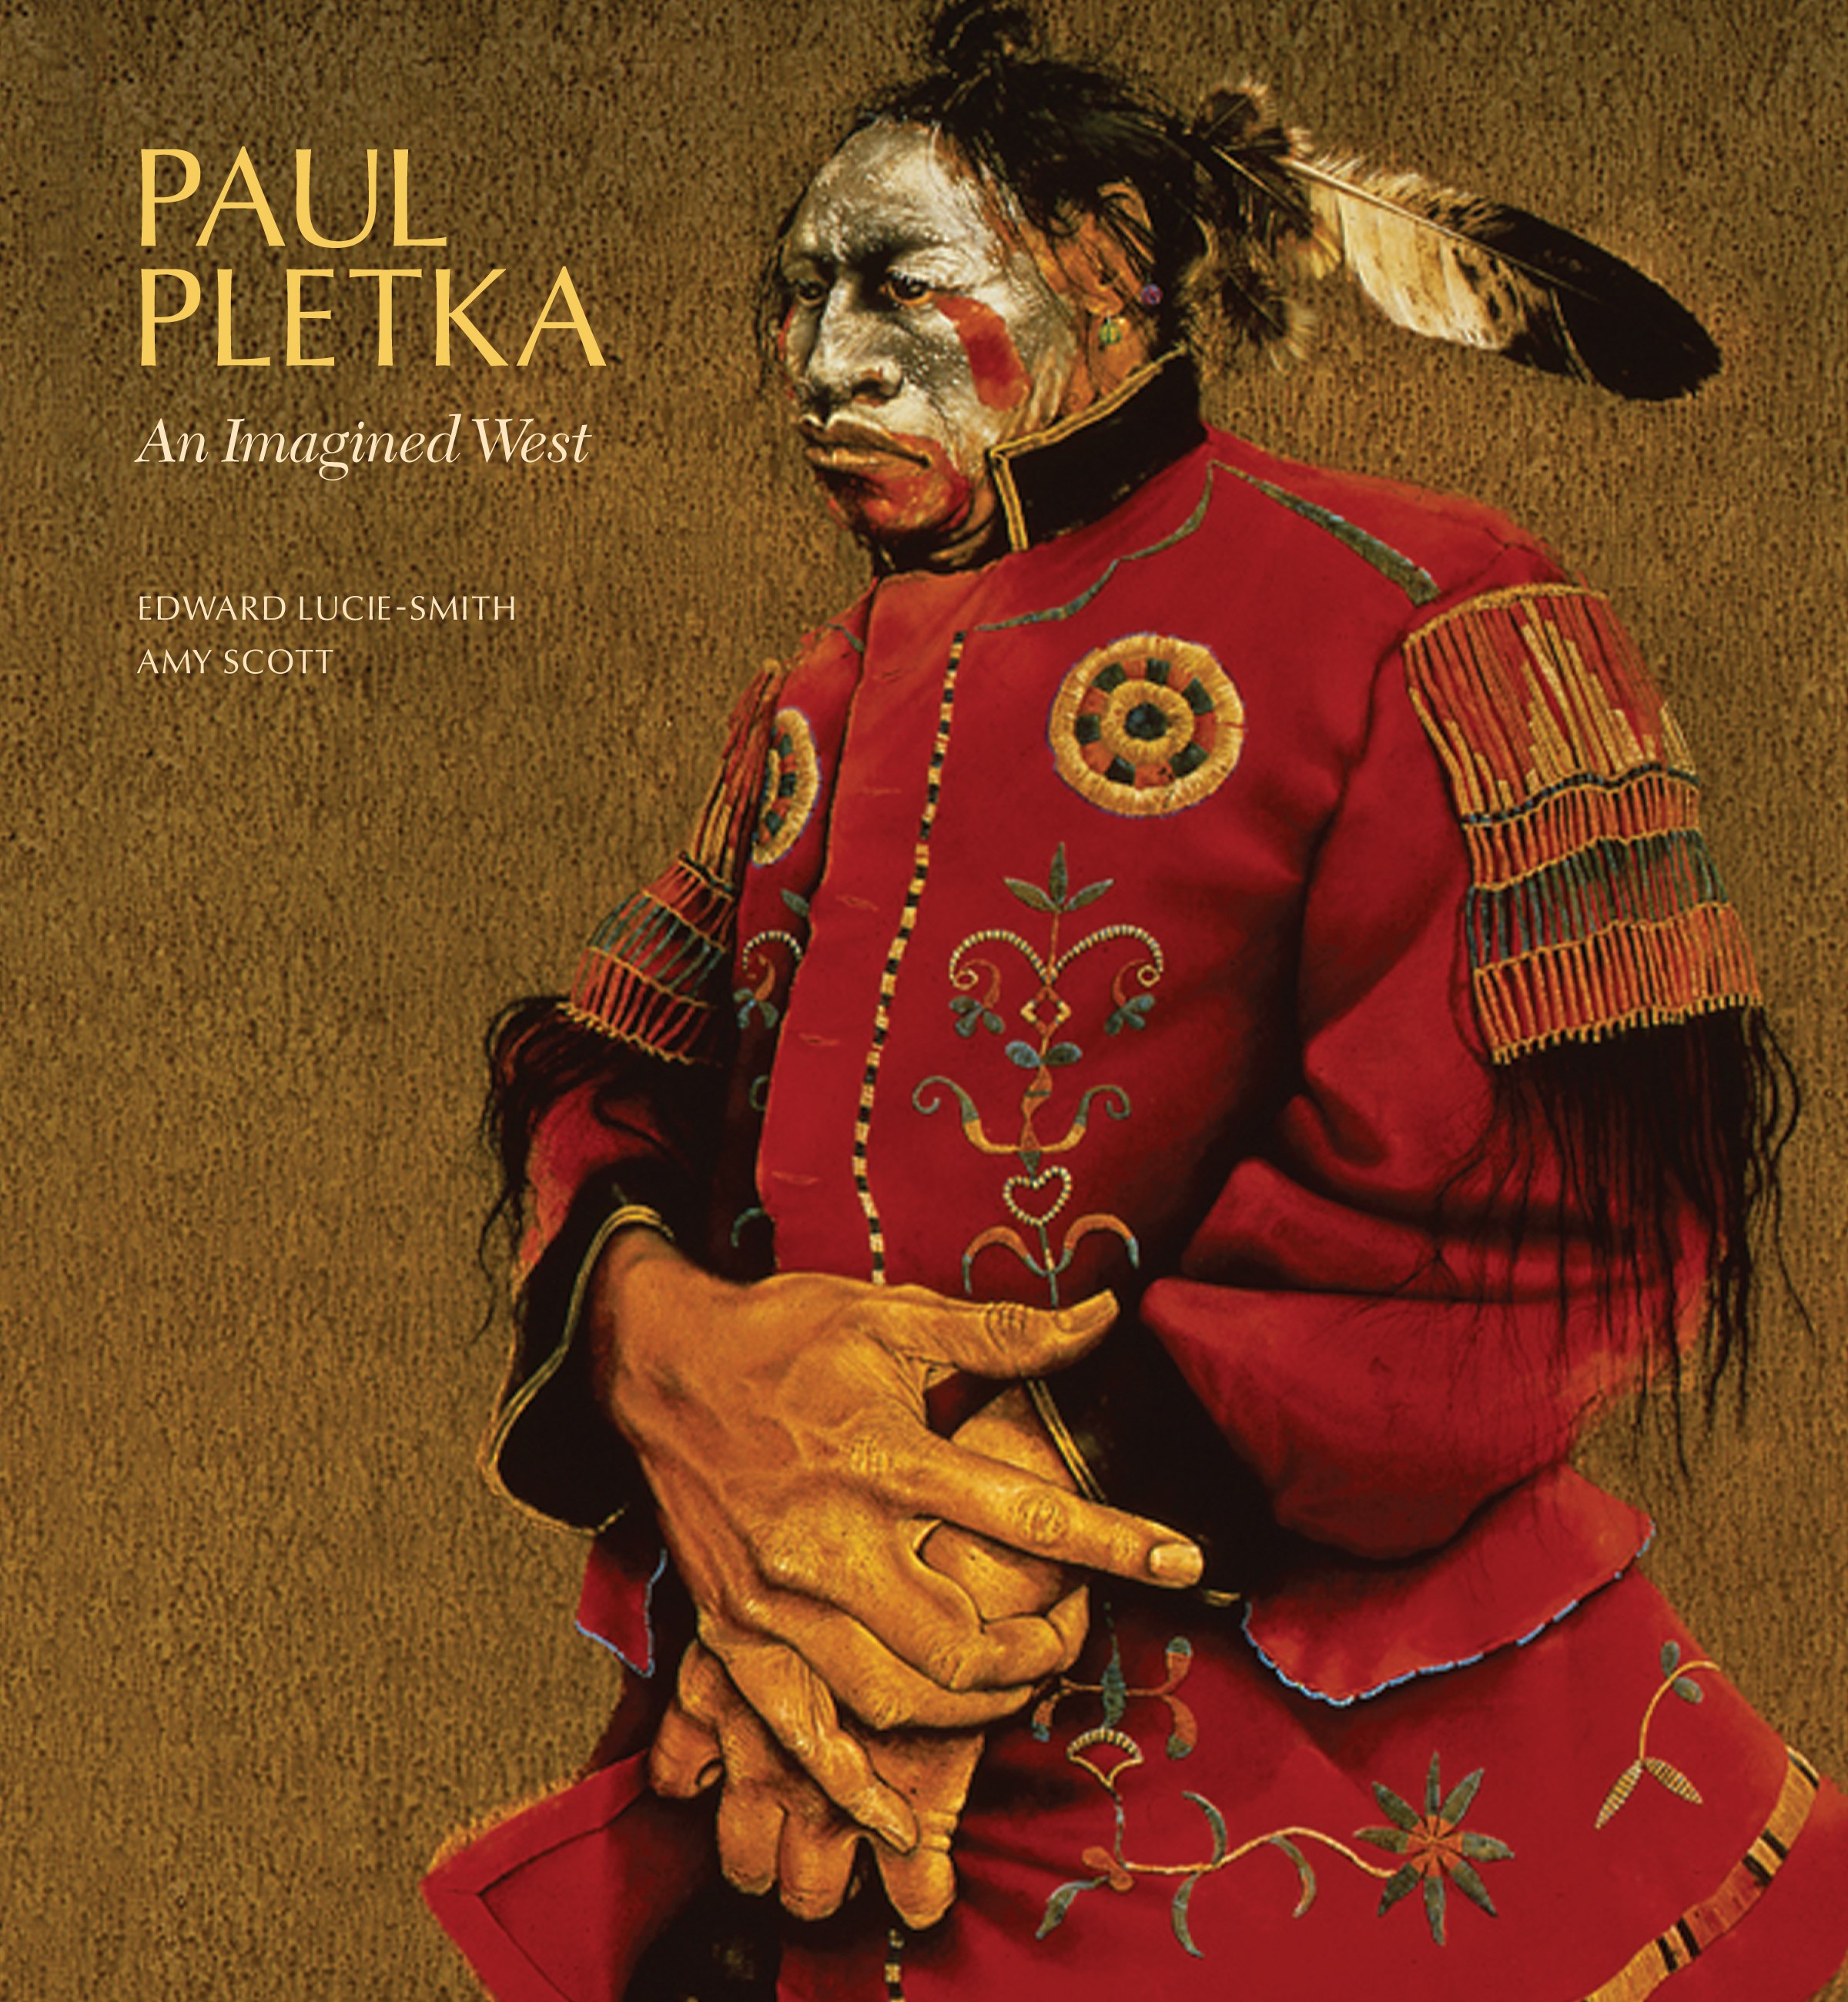 Monograph with Paul Pletka for Oklahoma University Press